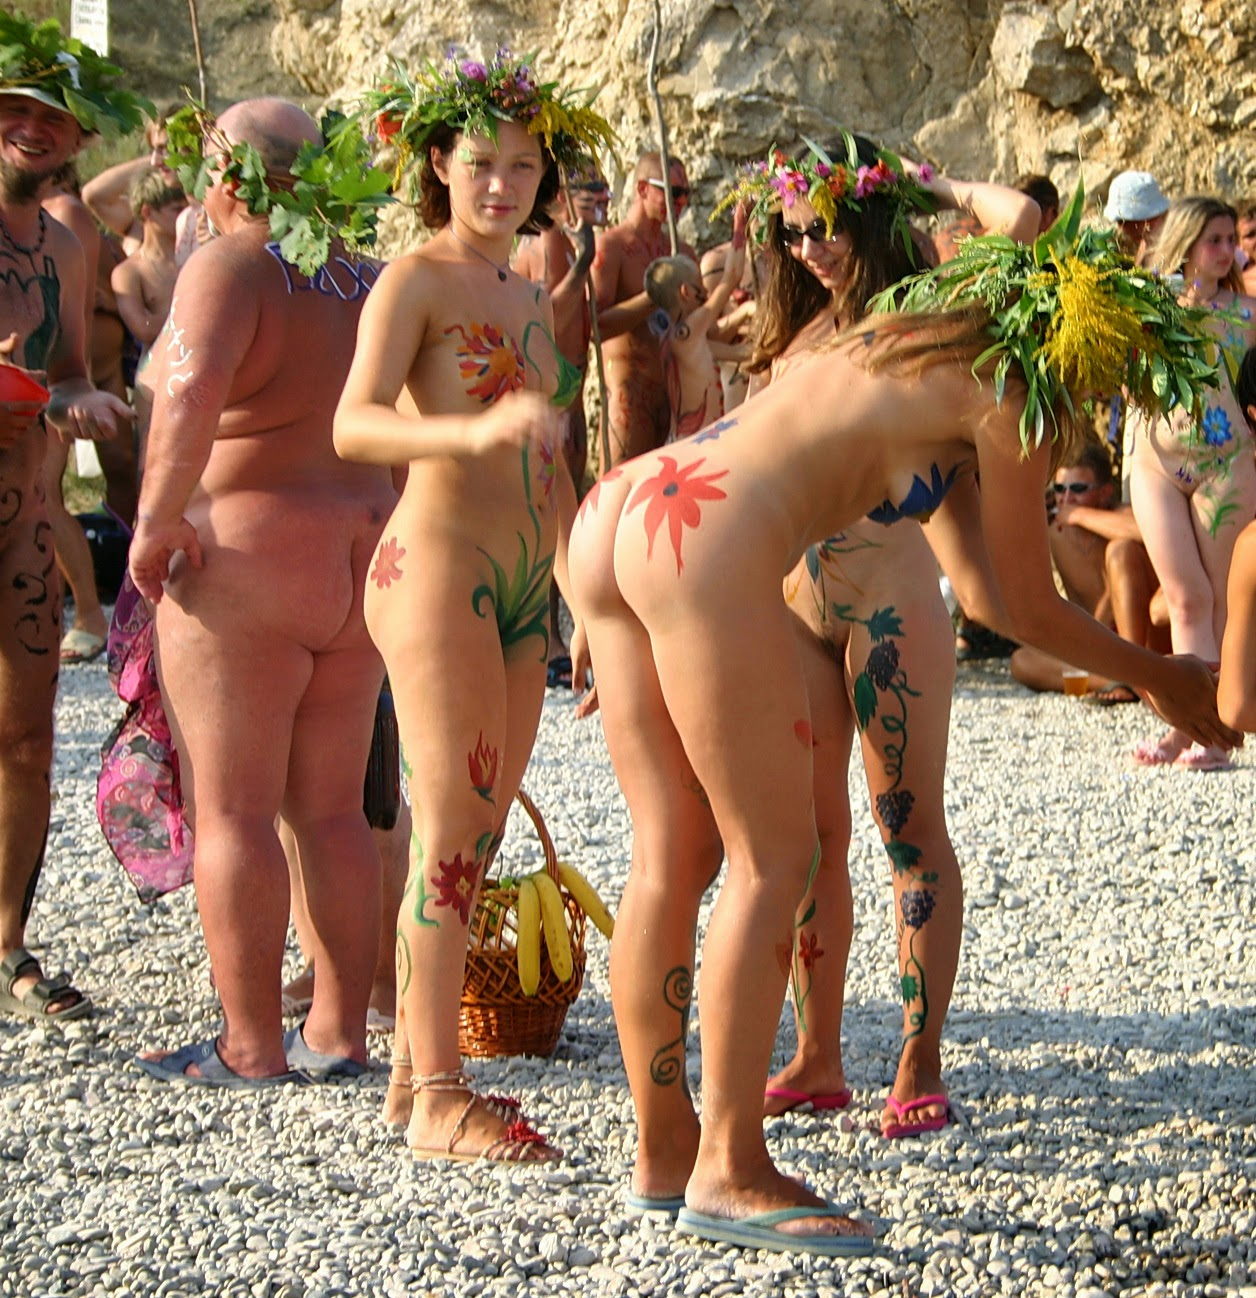 Think, Nude beach family body art much necessary